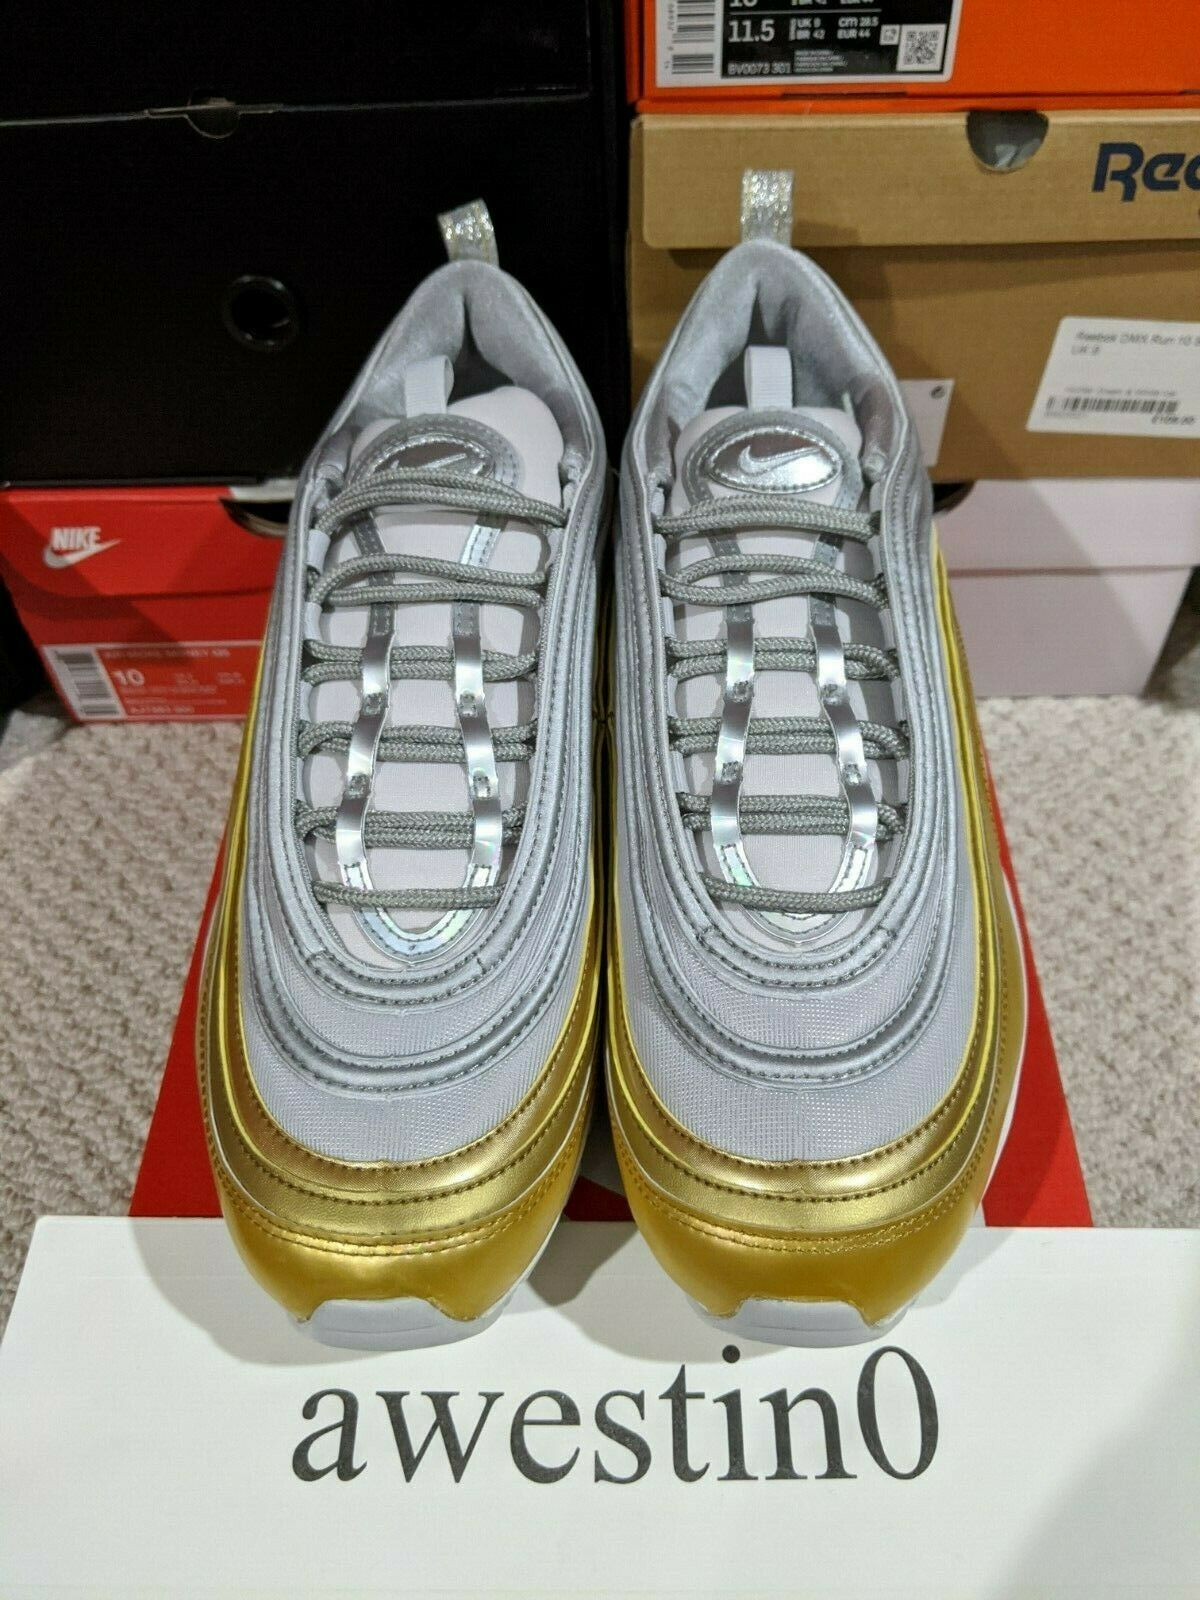 Ironico papa molestia  DS Nike Air Max 97 SE Vast Grey/Metallic Silver AQ4137 001 Size  11.5(W)/10(M) for sale online